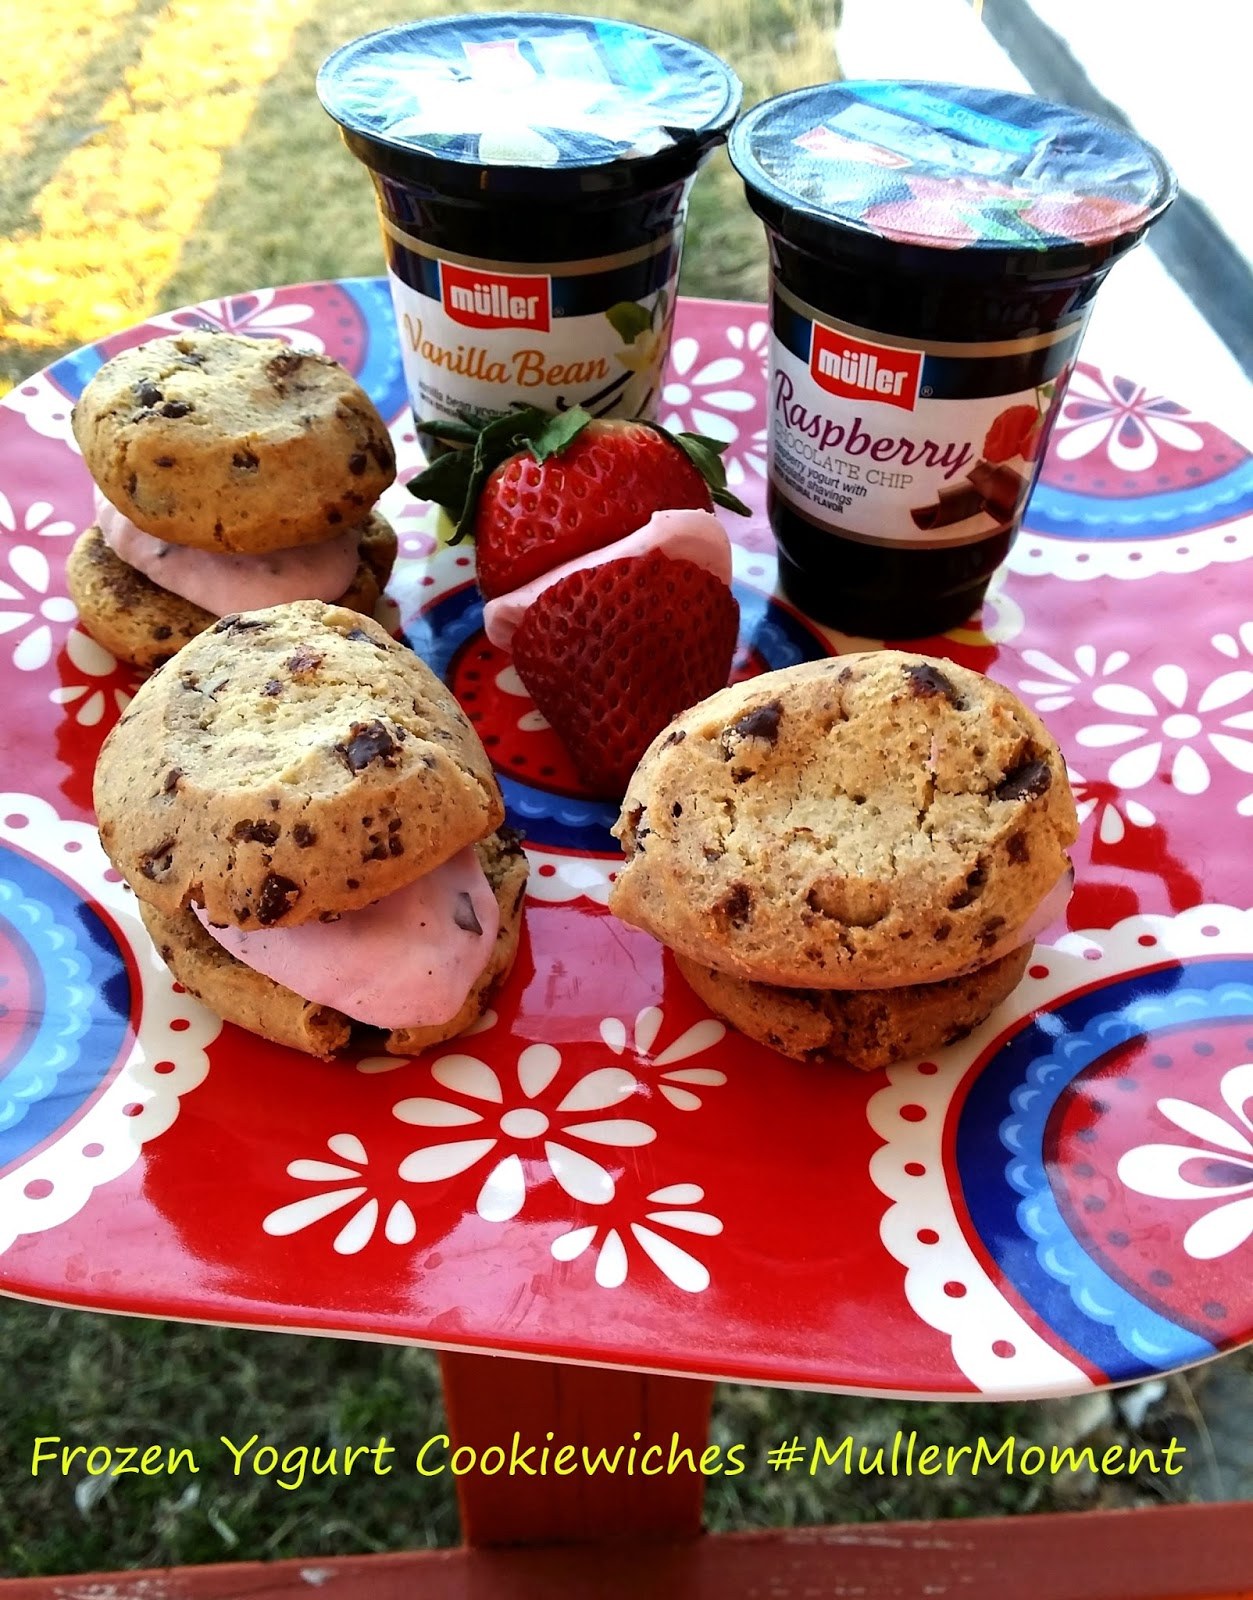 Frozen Yogurt Cookiewiches #MullerMoment #ad